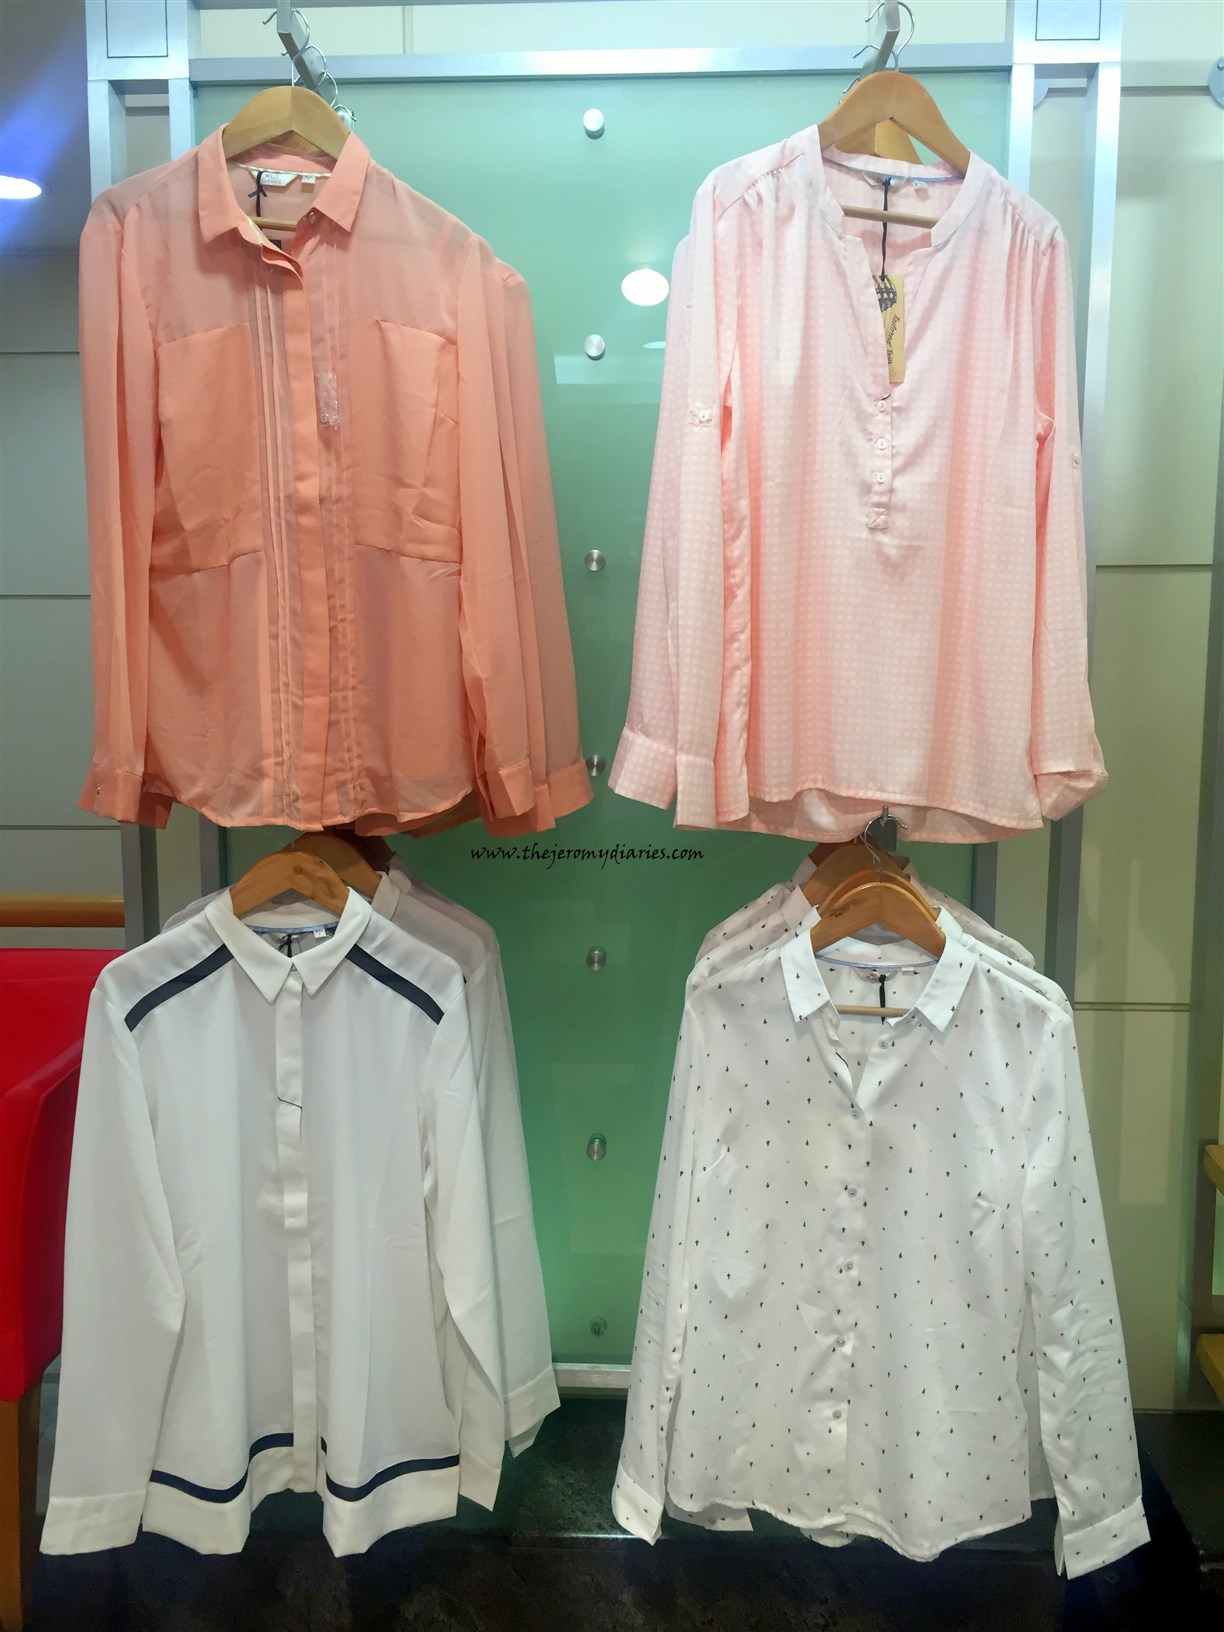 formal shirts for women wills lifestyle spring summer 2016 collection the jeromy diaries